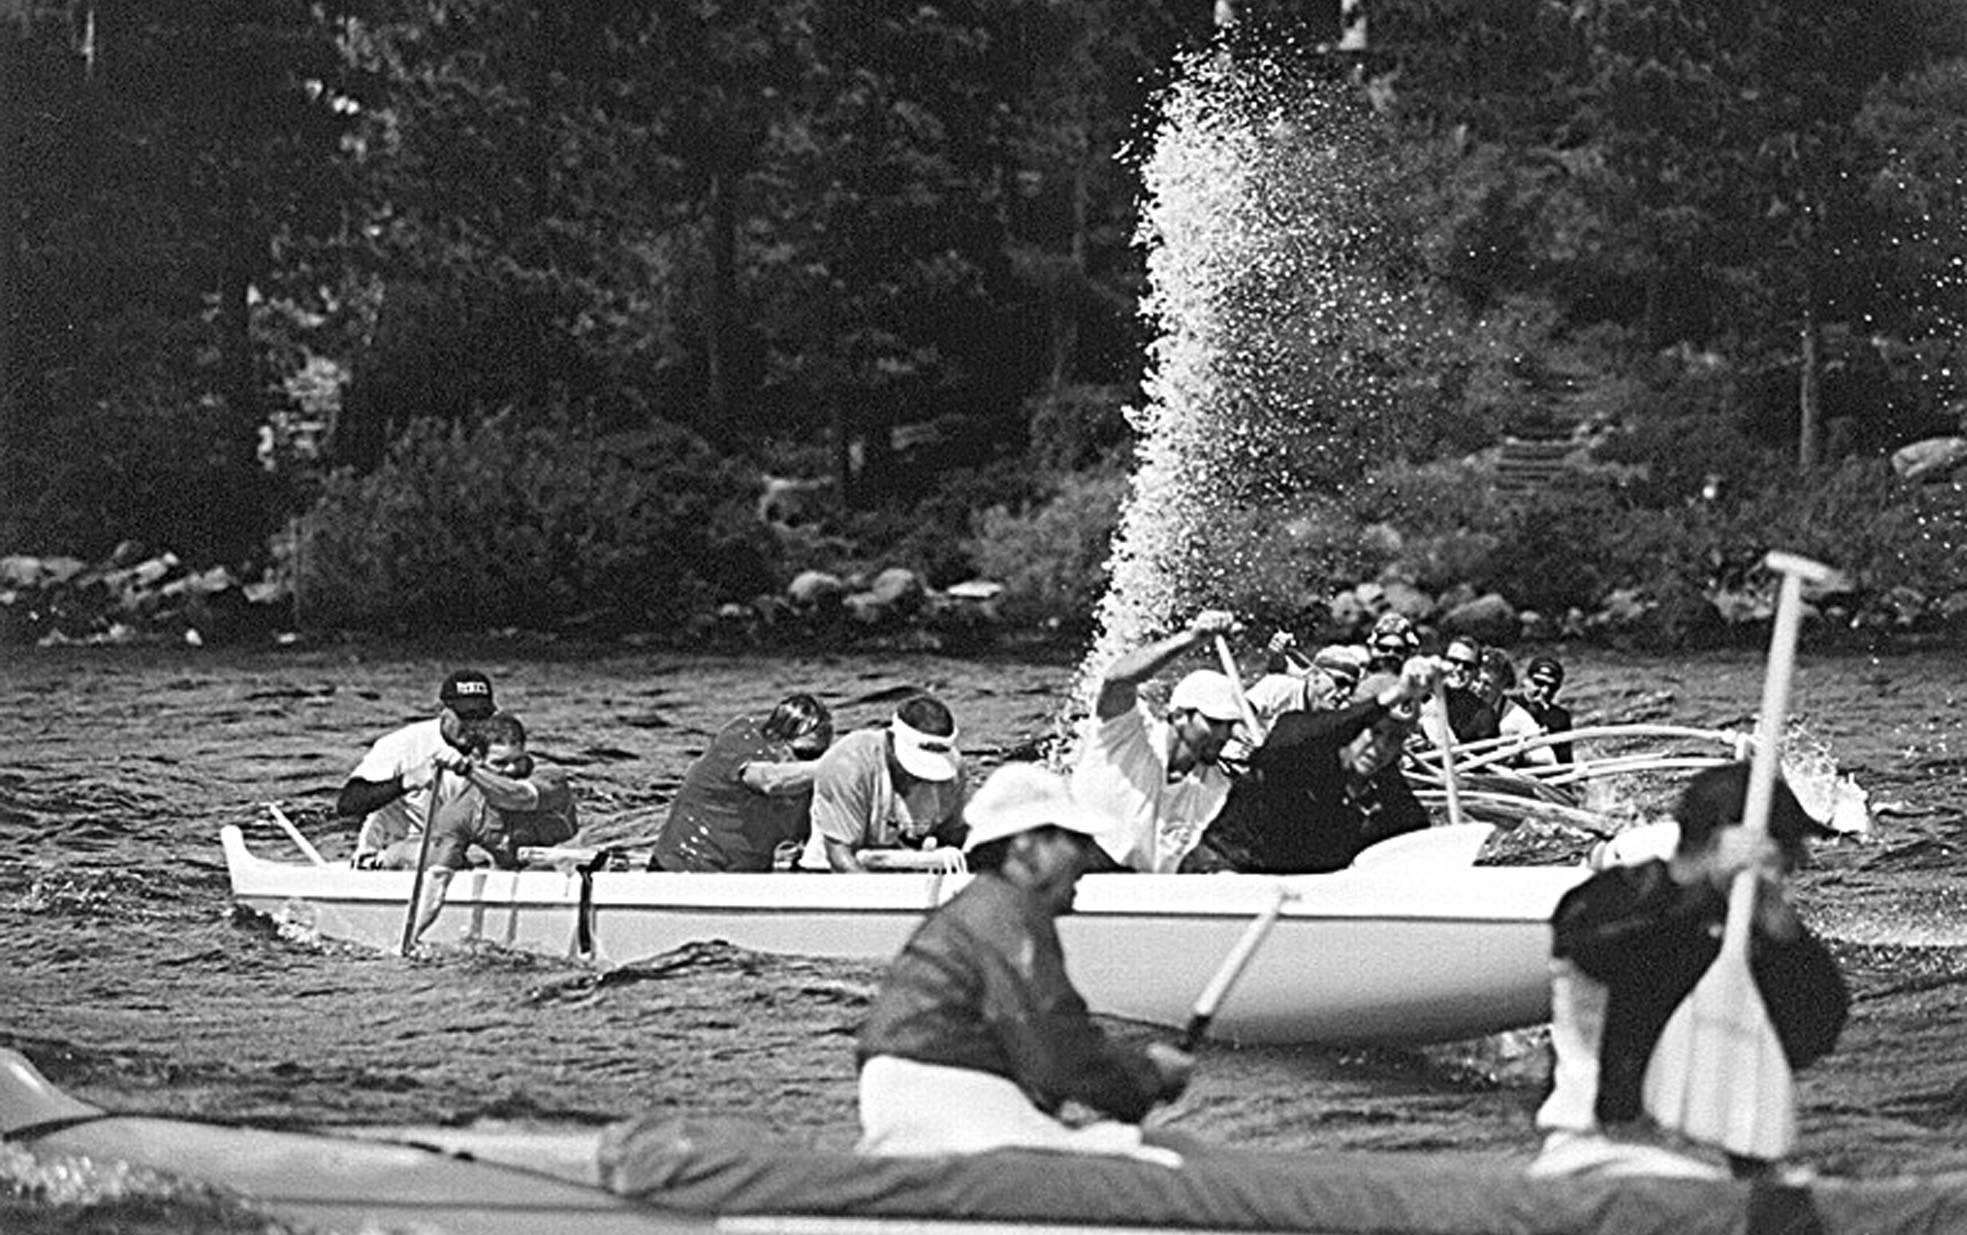 Seat 3 bailing . . . NOTE SEAT 1 HAS COME OVER / OR REMAINED ON THE LEFT AFTER THE 'HUT' WAS CALLED, TO PROTECT THE AMA, however, seat 1 has minimal control over canoe stability, which is more greatly offset by the middle seats (and the steerer!). If you travel to an event and paddle an unfamiliar canoe, be sure to check where the water 'pools' so as you know which seat will need to be bailing most. This water plume, indicates good bailing technique and by the looks of it, they are paddling downwind.